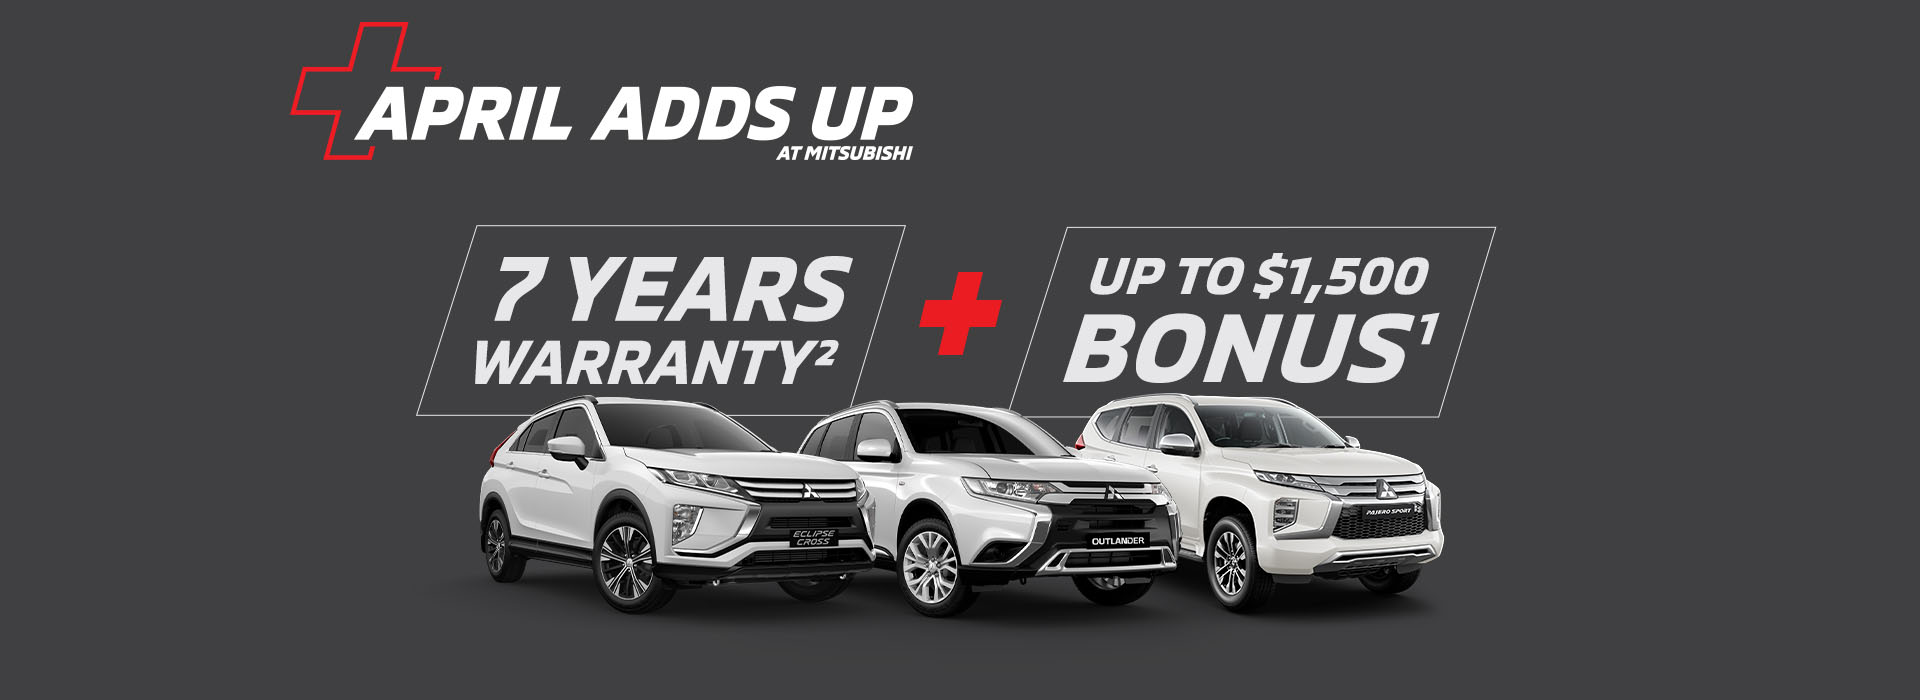 Mitsubishi 7 Years Warranty + Up to $1,500 Bonus